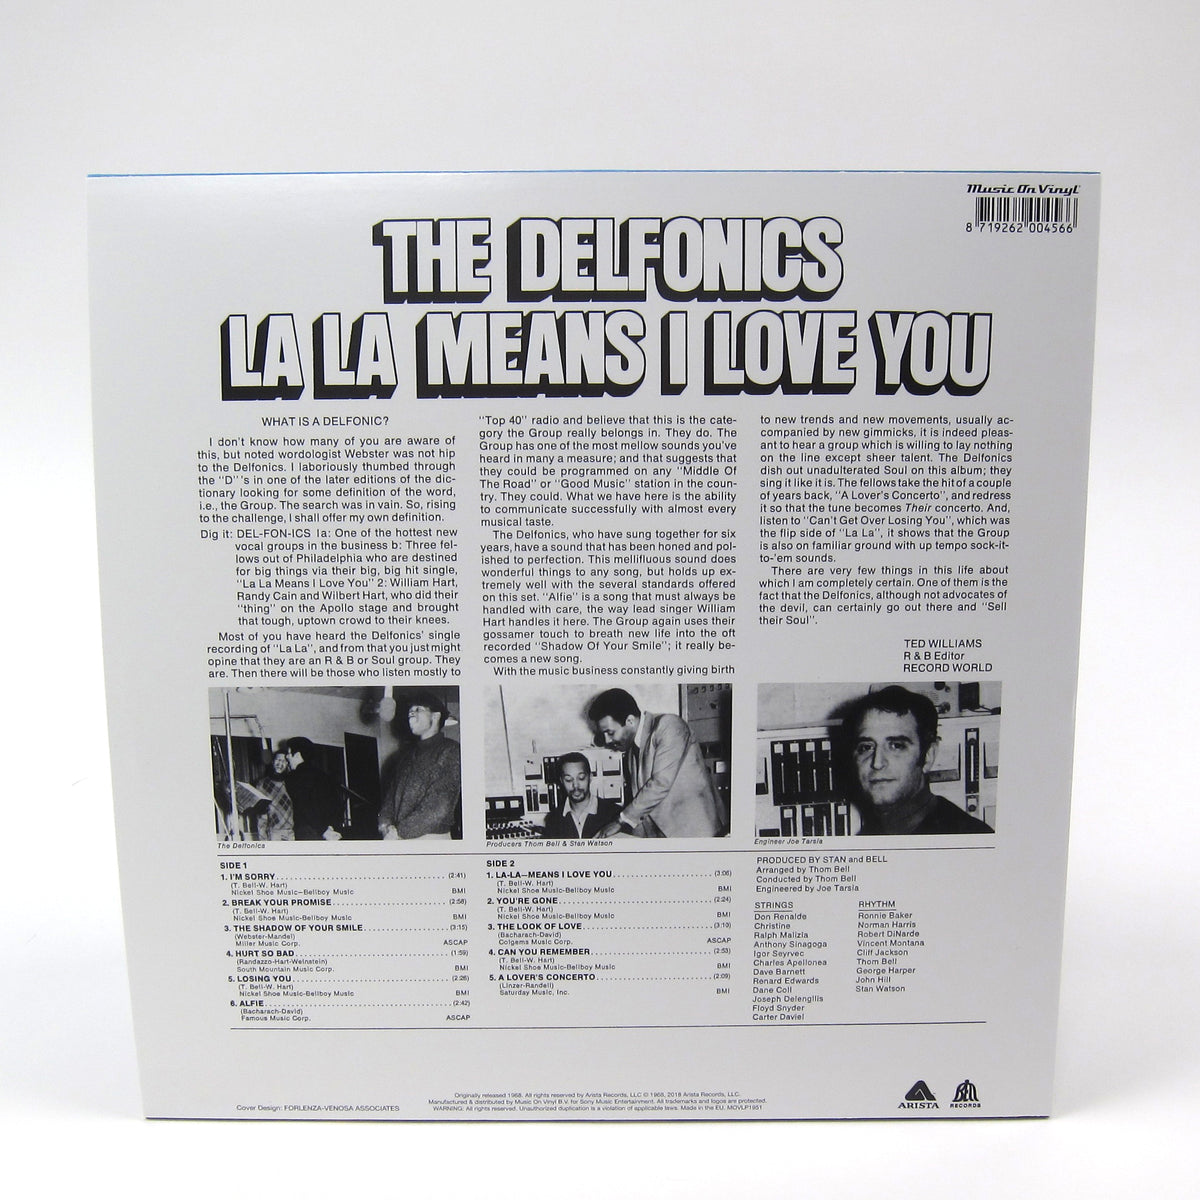 The Delfonics: La La Means I Love You (Music On Vinyl 180g) Vinyl LP